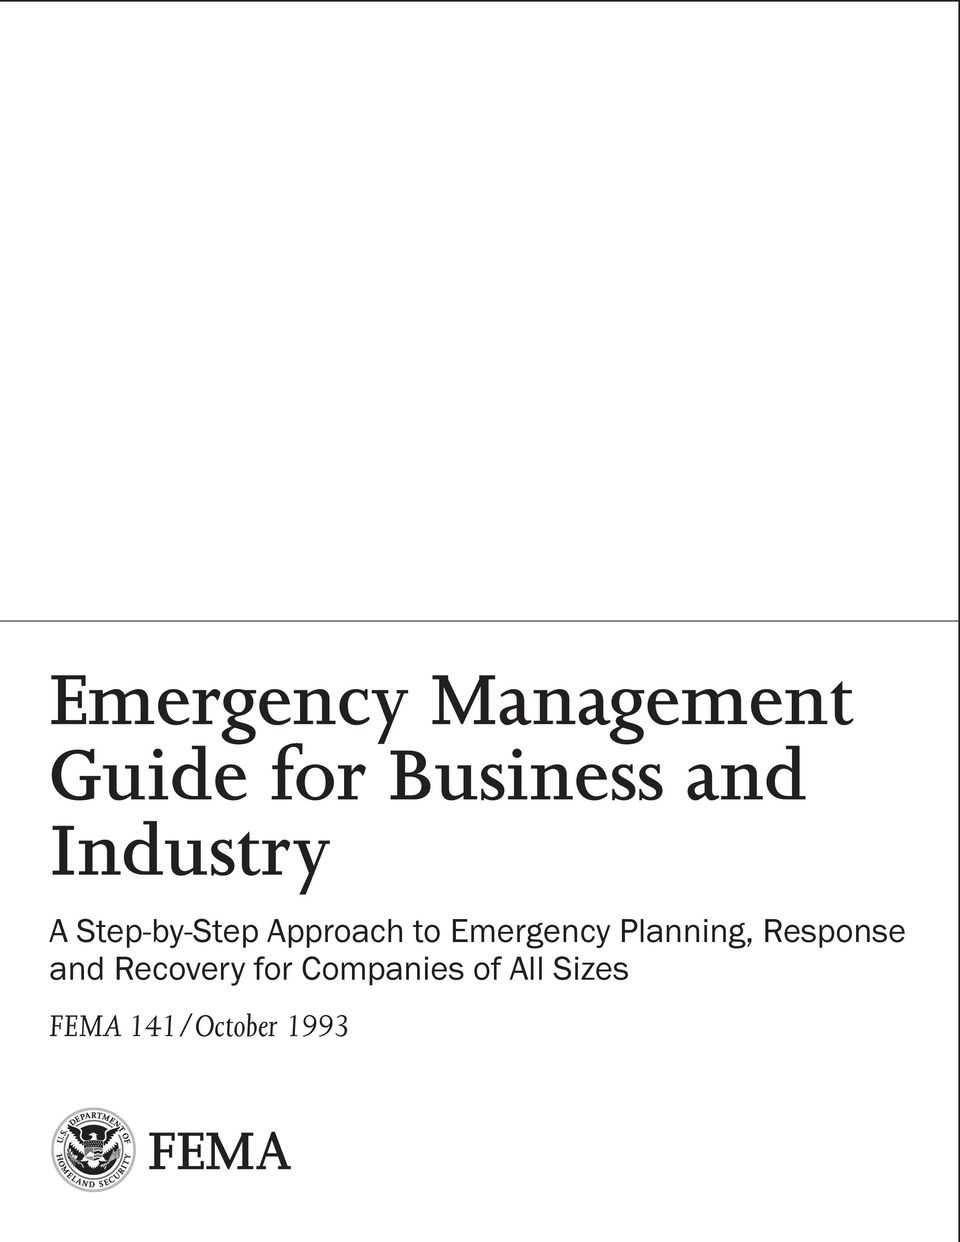 Emergency Planning, Response and Recovery